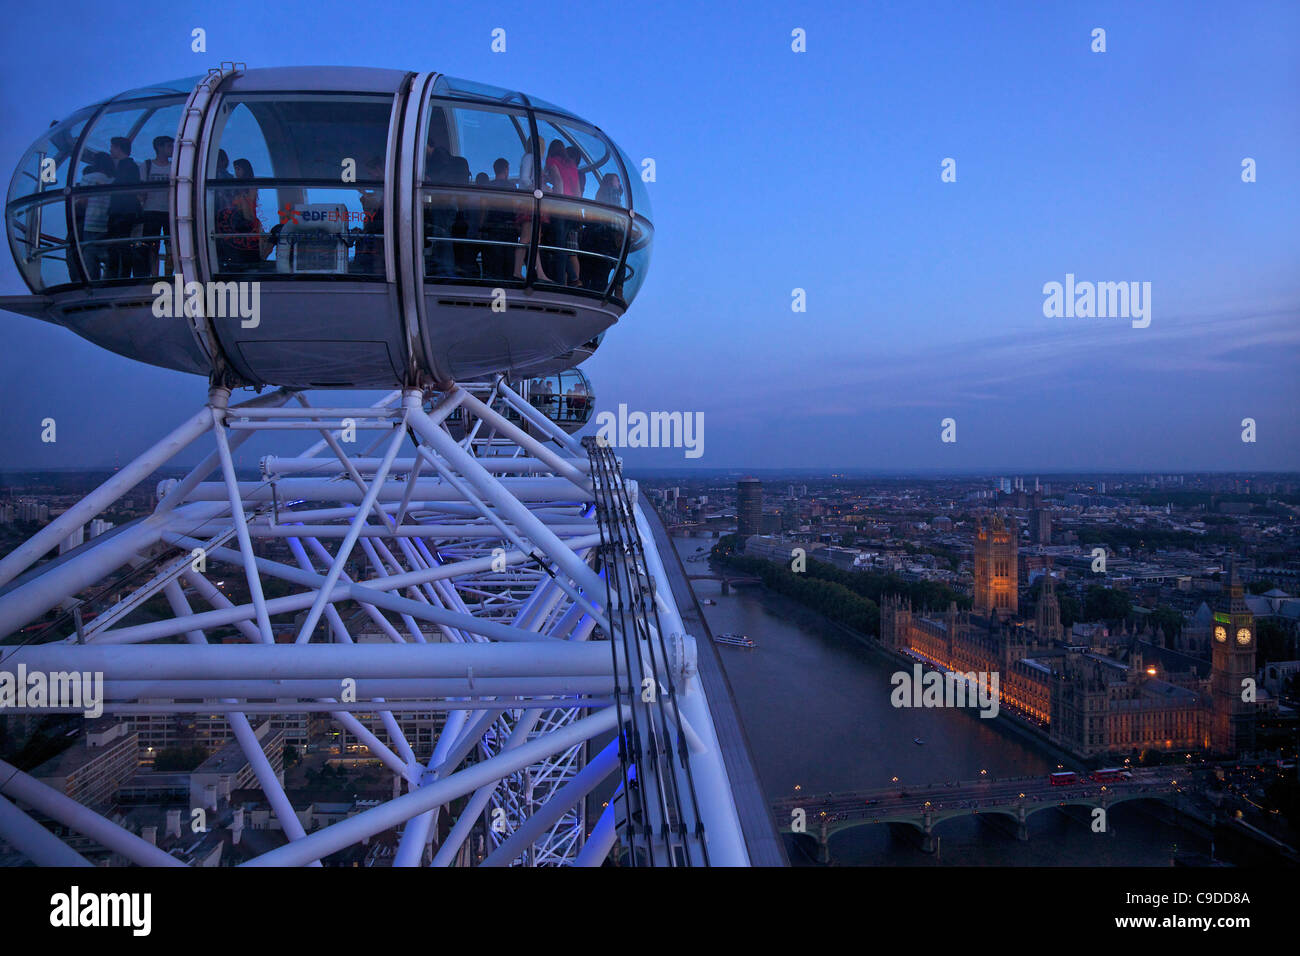 View of passenger pod capsule, Houses of Parliament, Big Ben and the River Thames from the London Eye at dusk,  Stock Photo